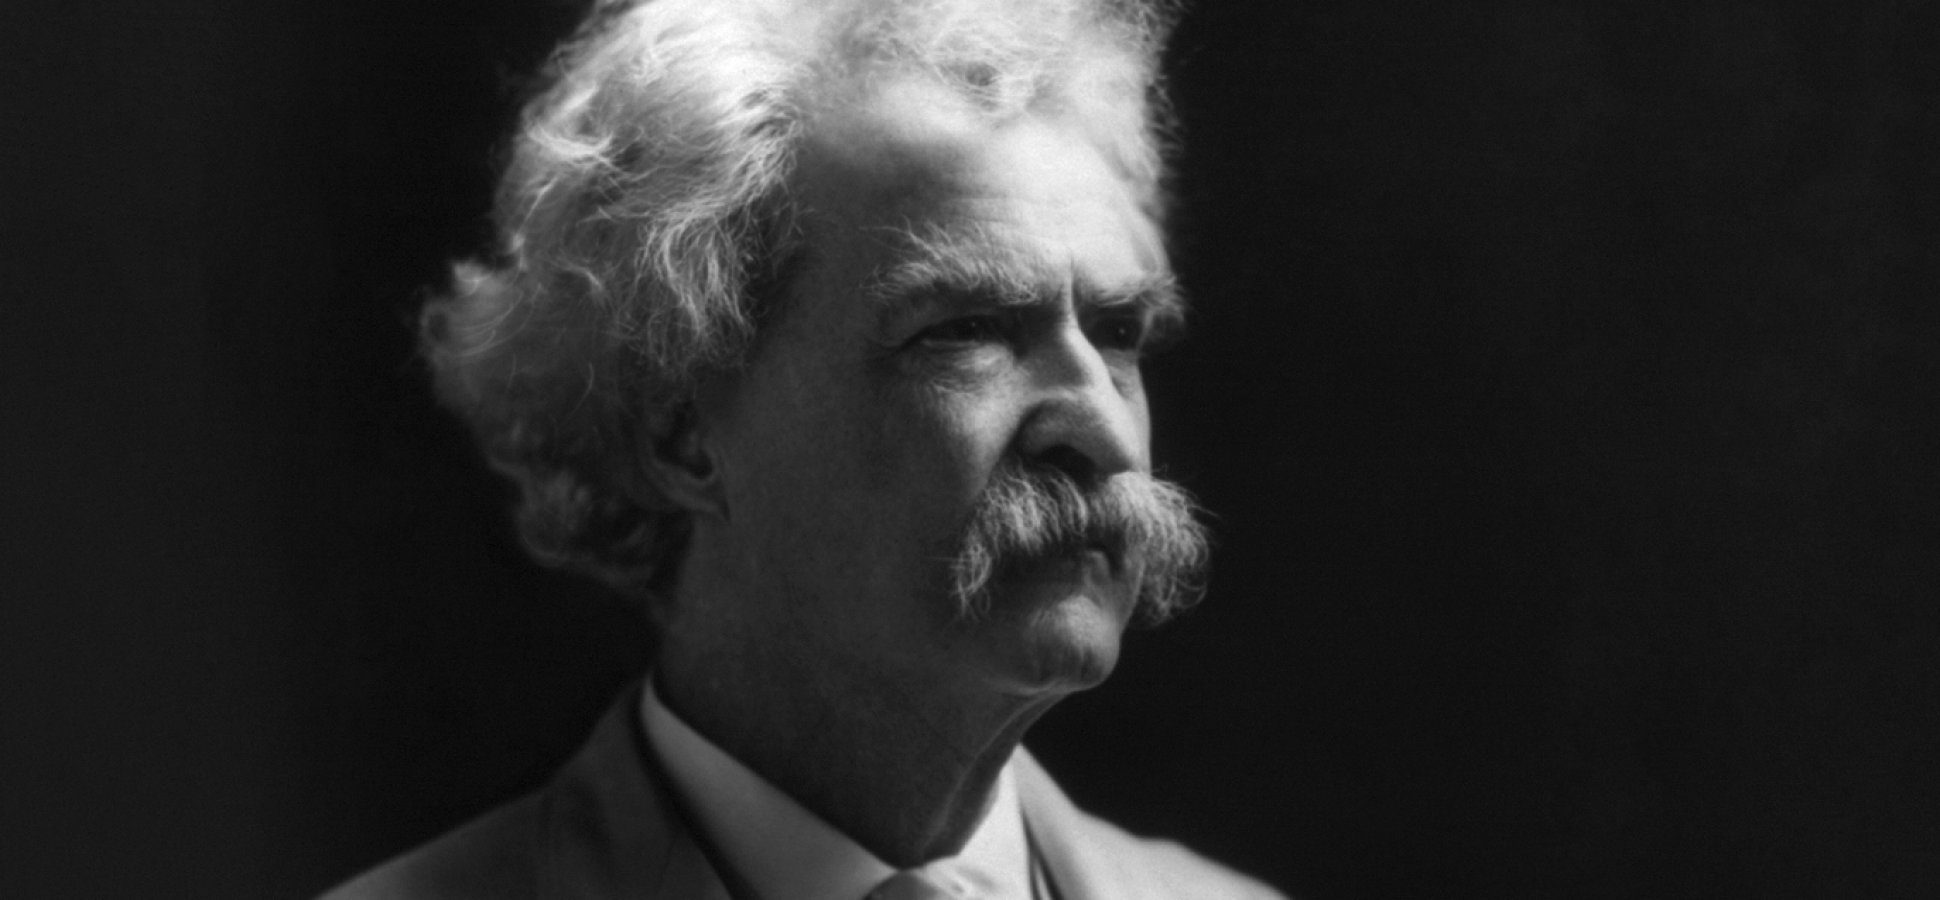 The 1 Thing That Mark Twain Said That Stops Prejudice Dead in Its Tracks